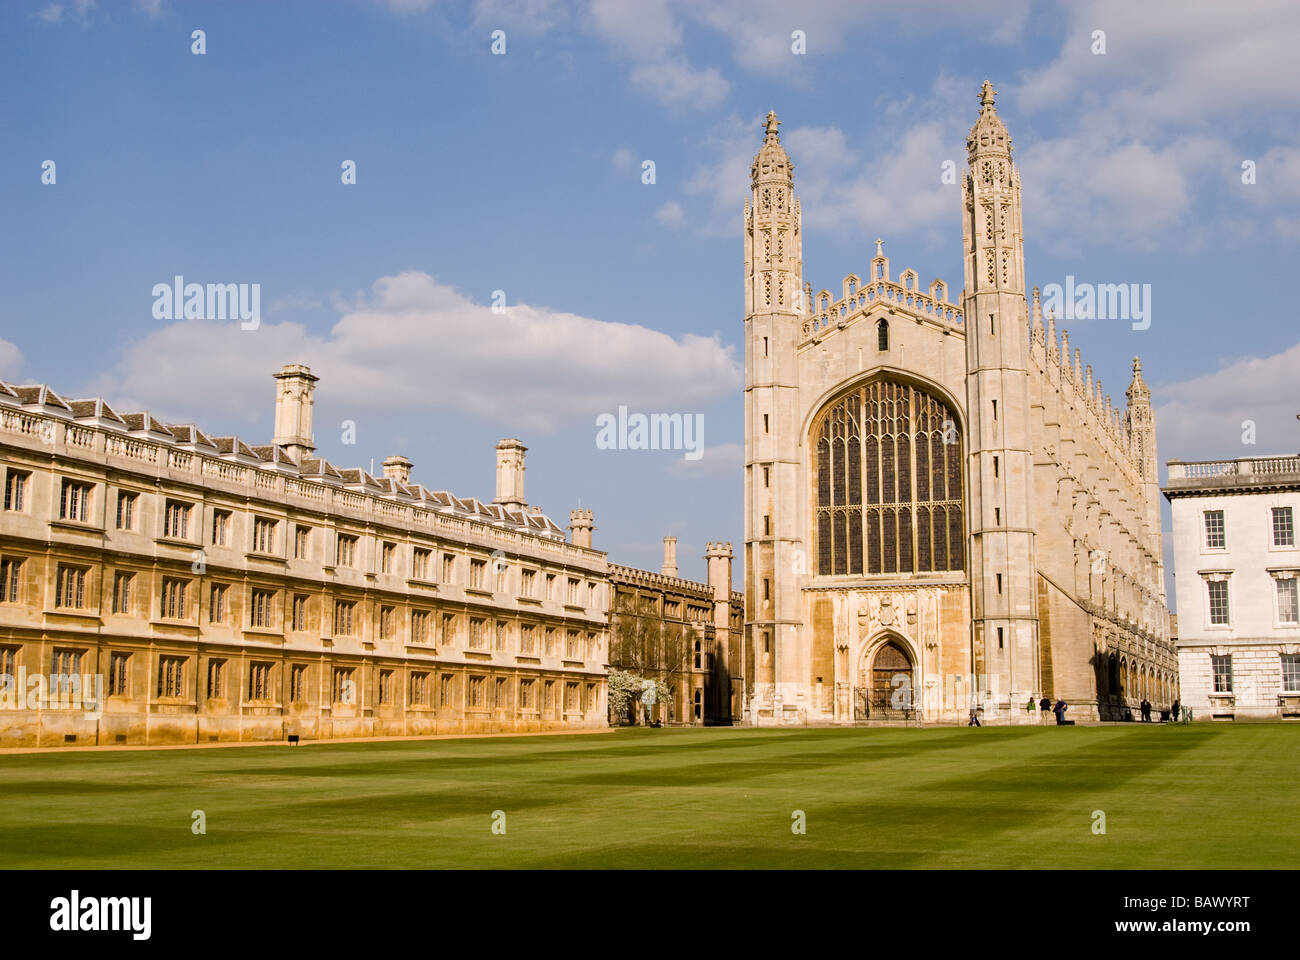 King's College Chapel Cambridge University - Stock Image